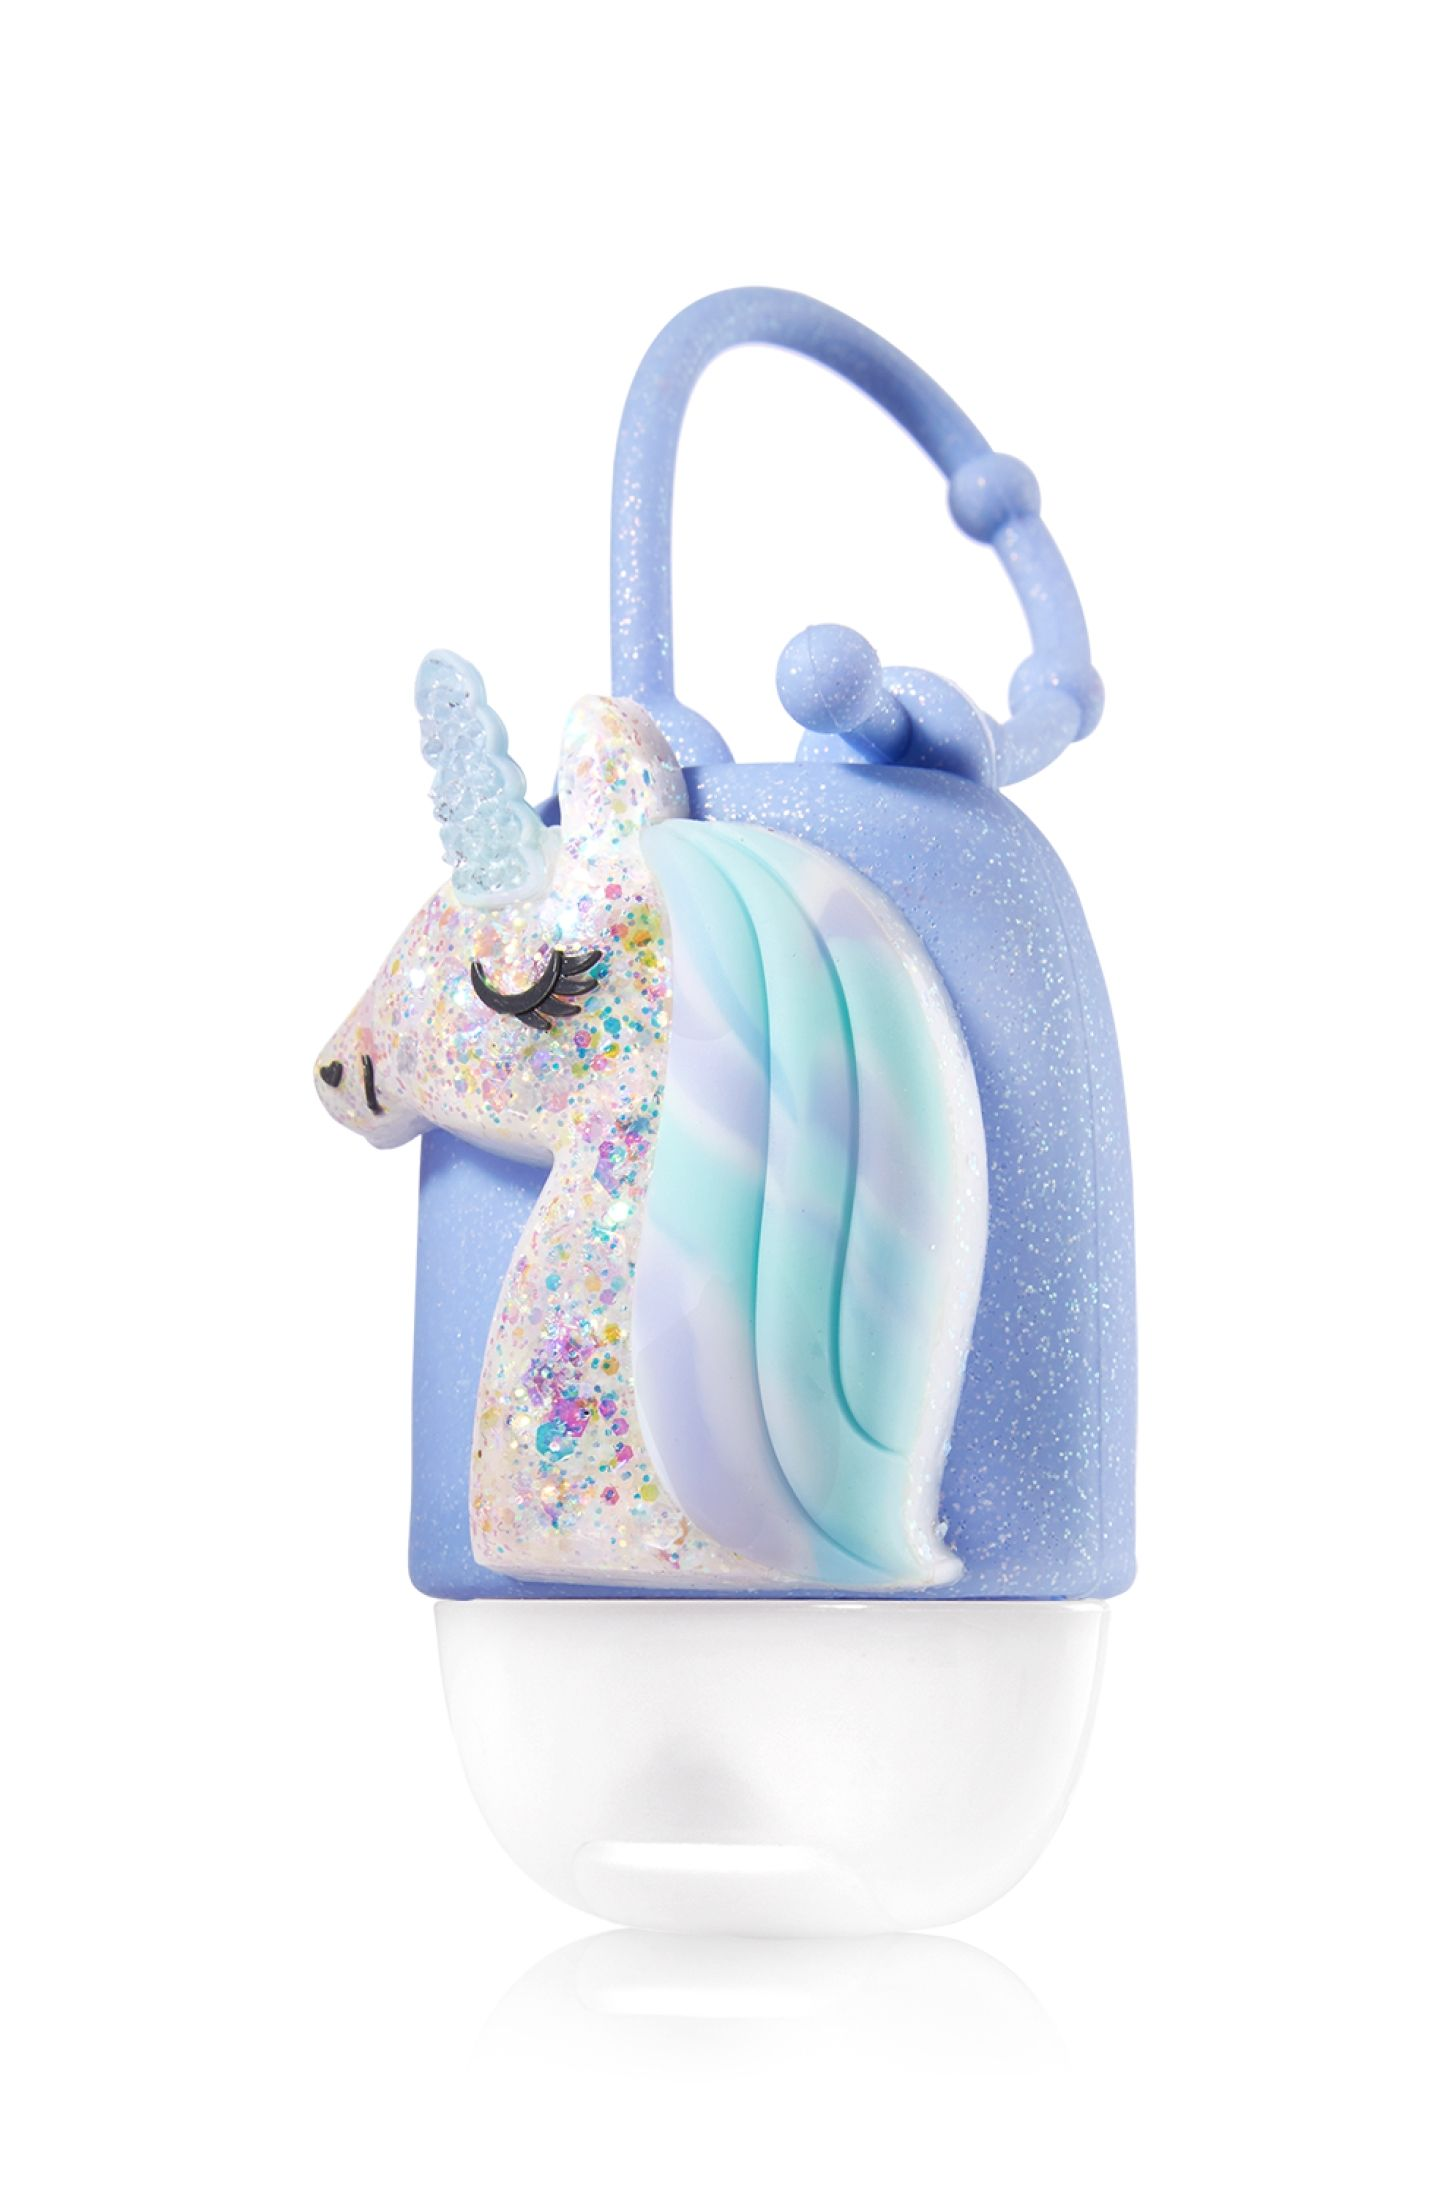 Unicorn Light Up Pocketbac Holder Bath Body Works Bath